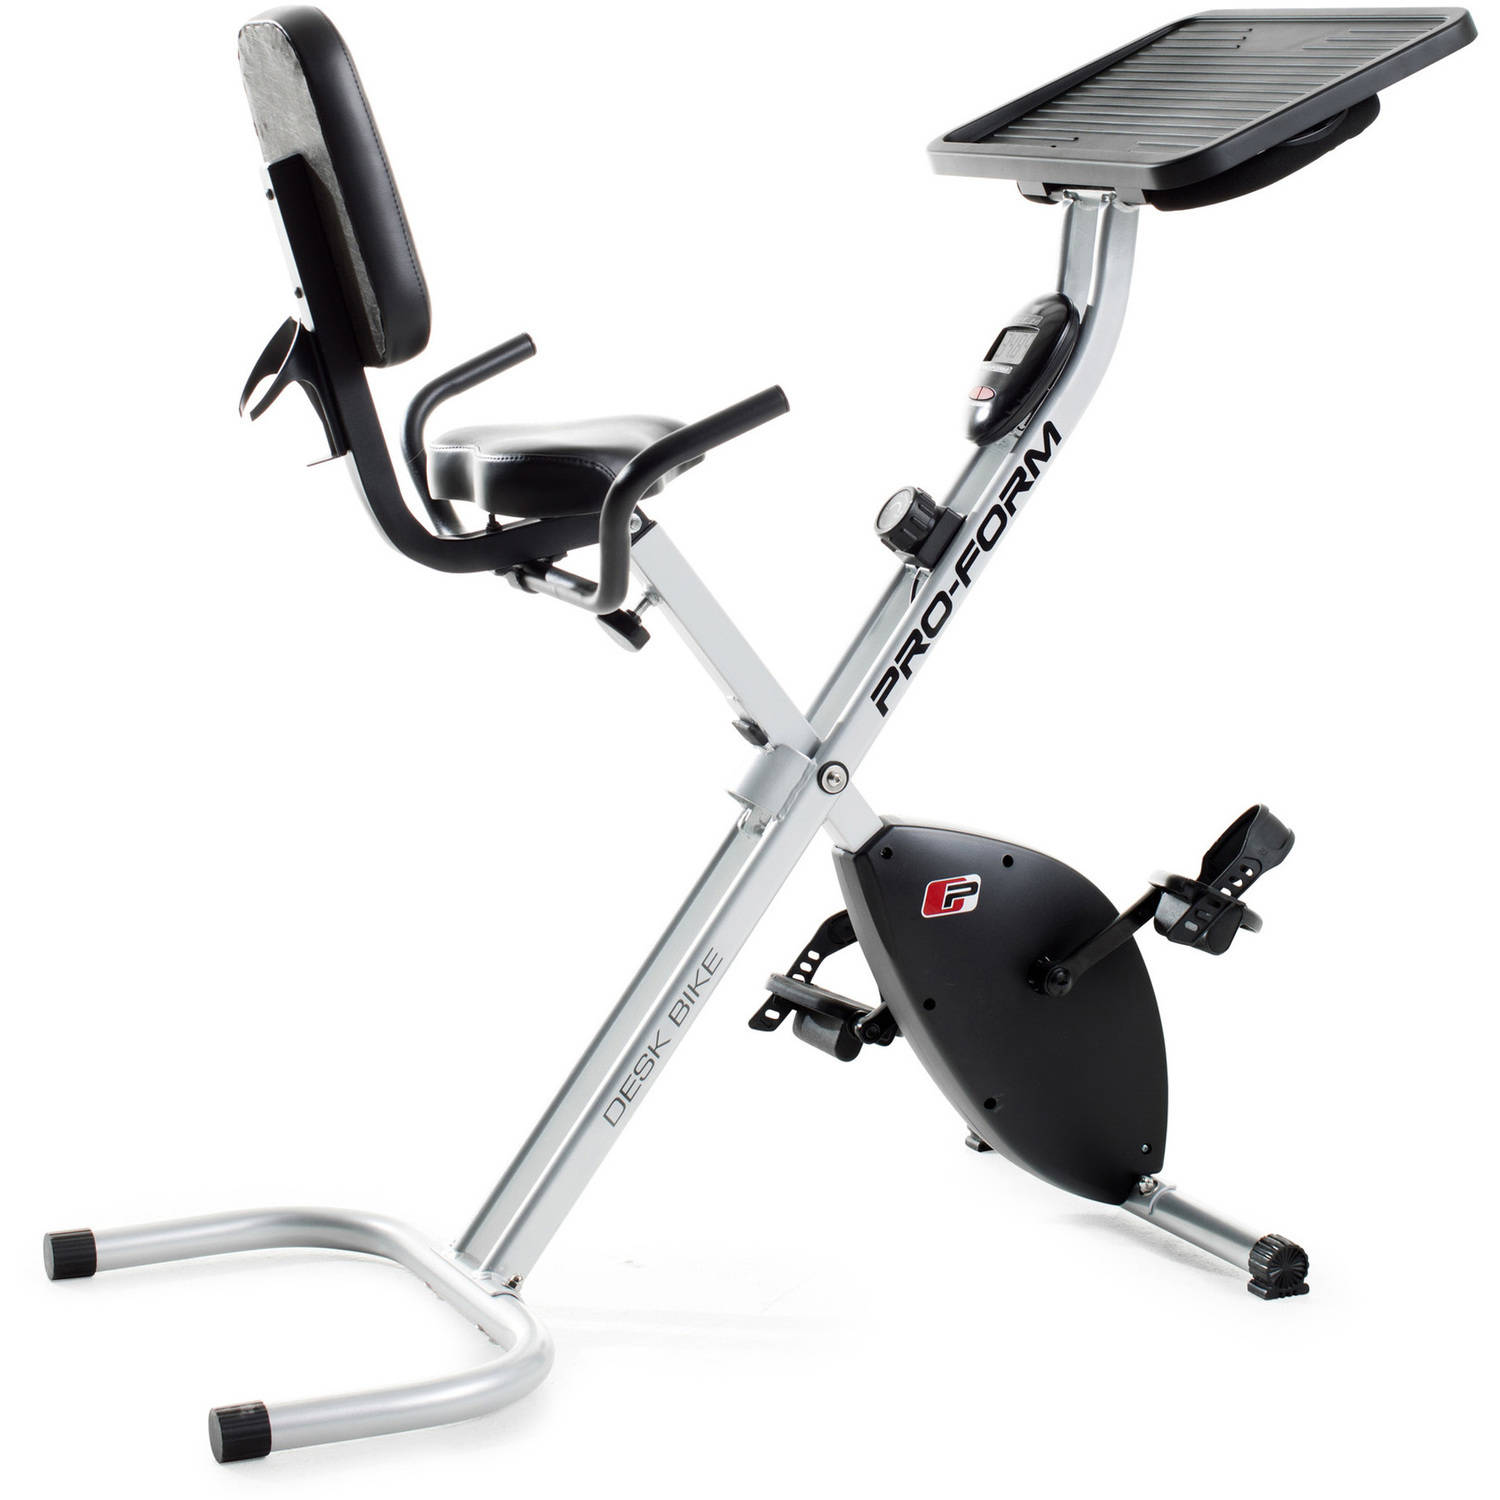 resistance chair exercise system reviews childrens sofa chairs desk bike hostgarcia